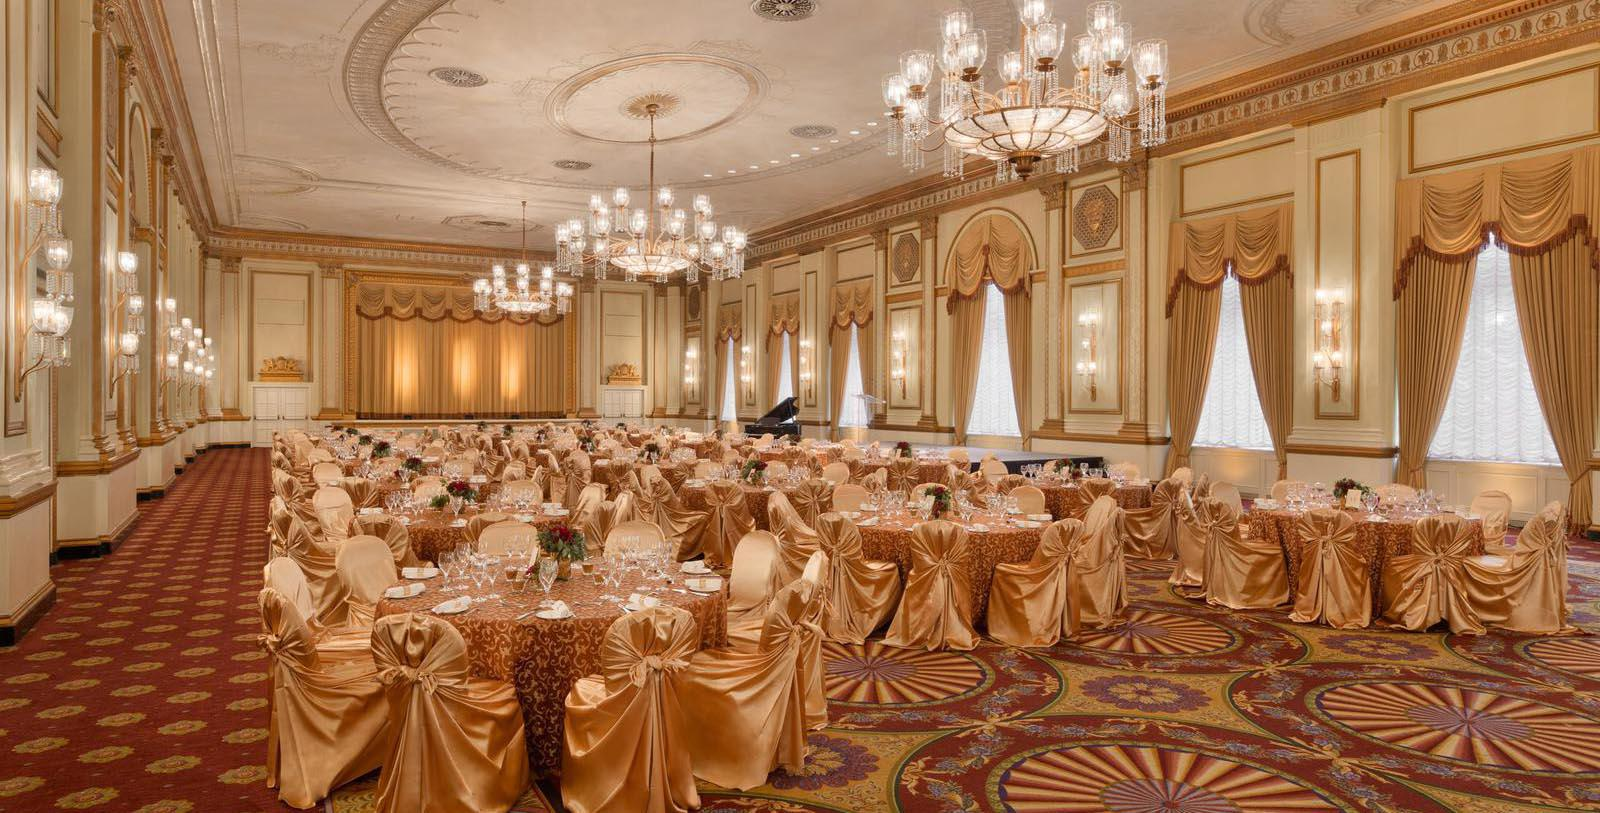 Image of ballroom set up for wedding reception Fairmont Hotel Vancouver, 1939, Member of Historic Hotels Worldwide, in Vancouver, Canada, Experience